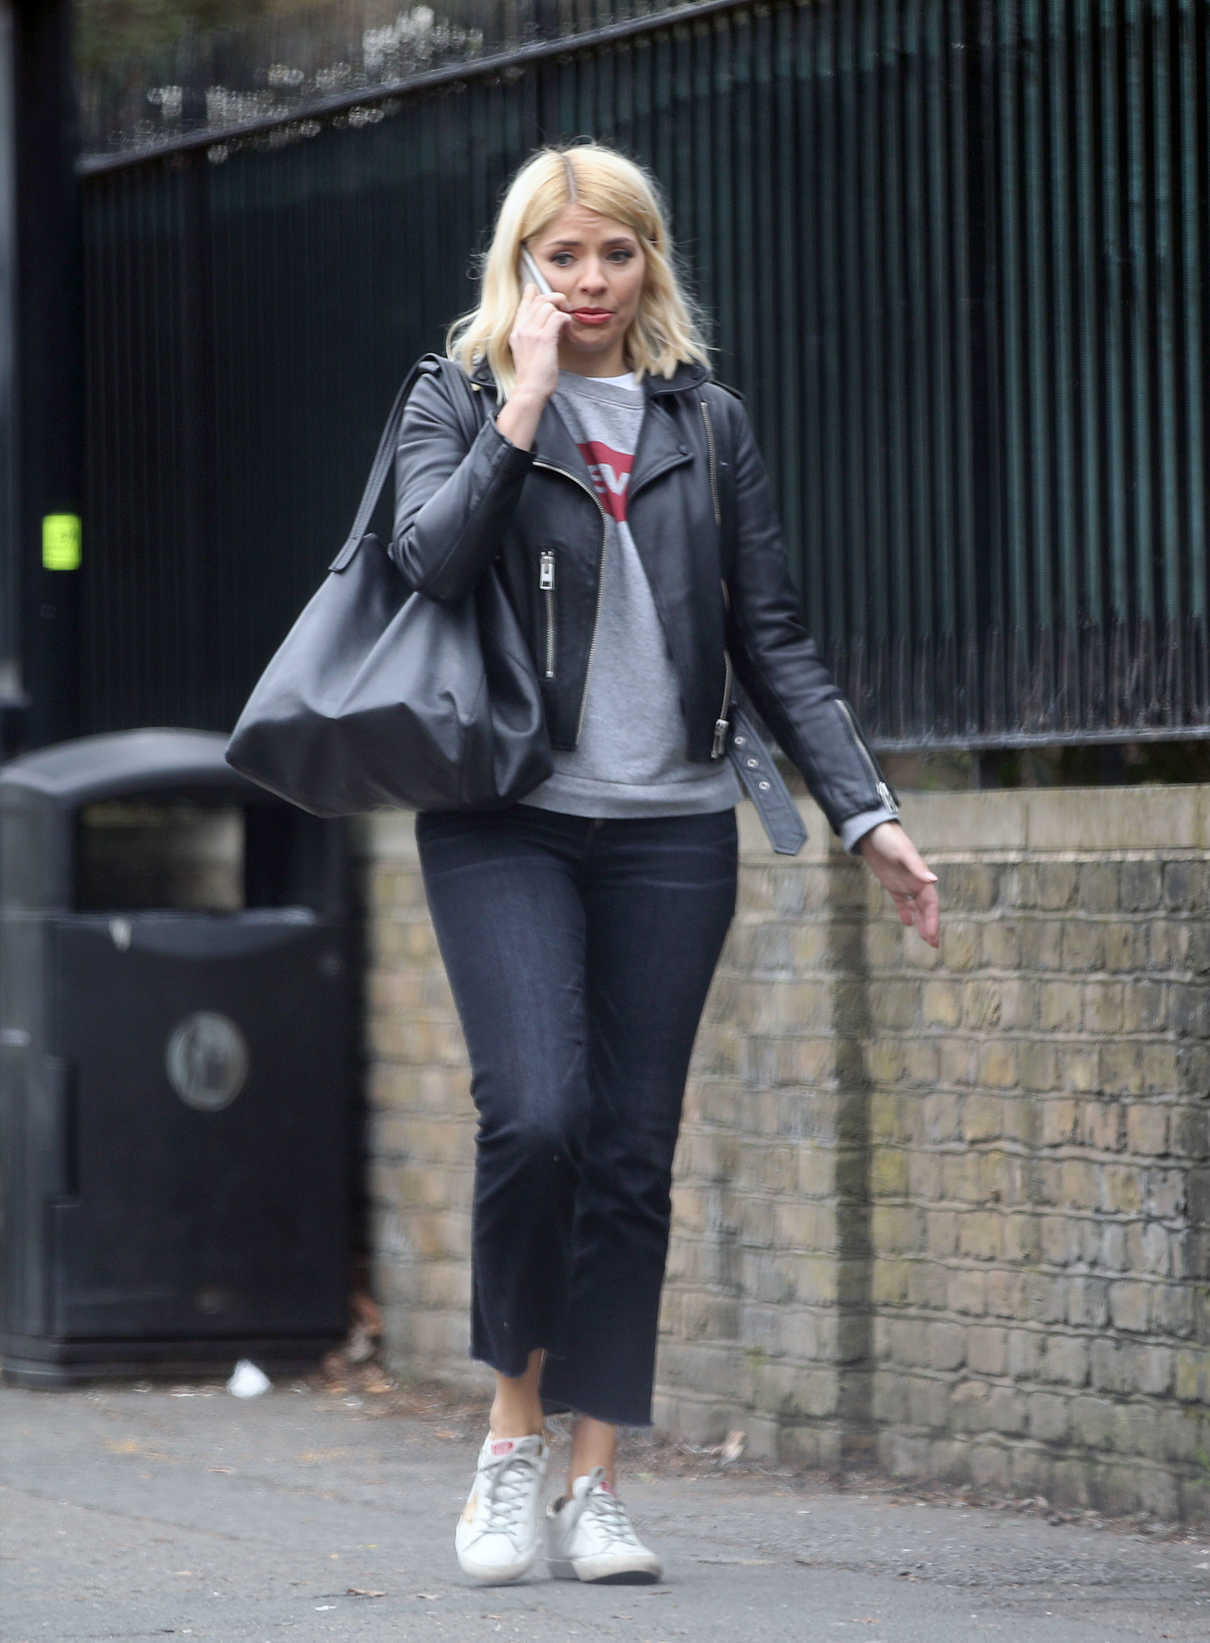 Holly Willoughby in a Black Leather Jacket